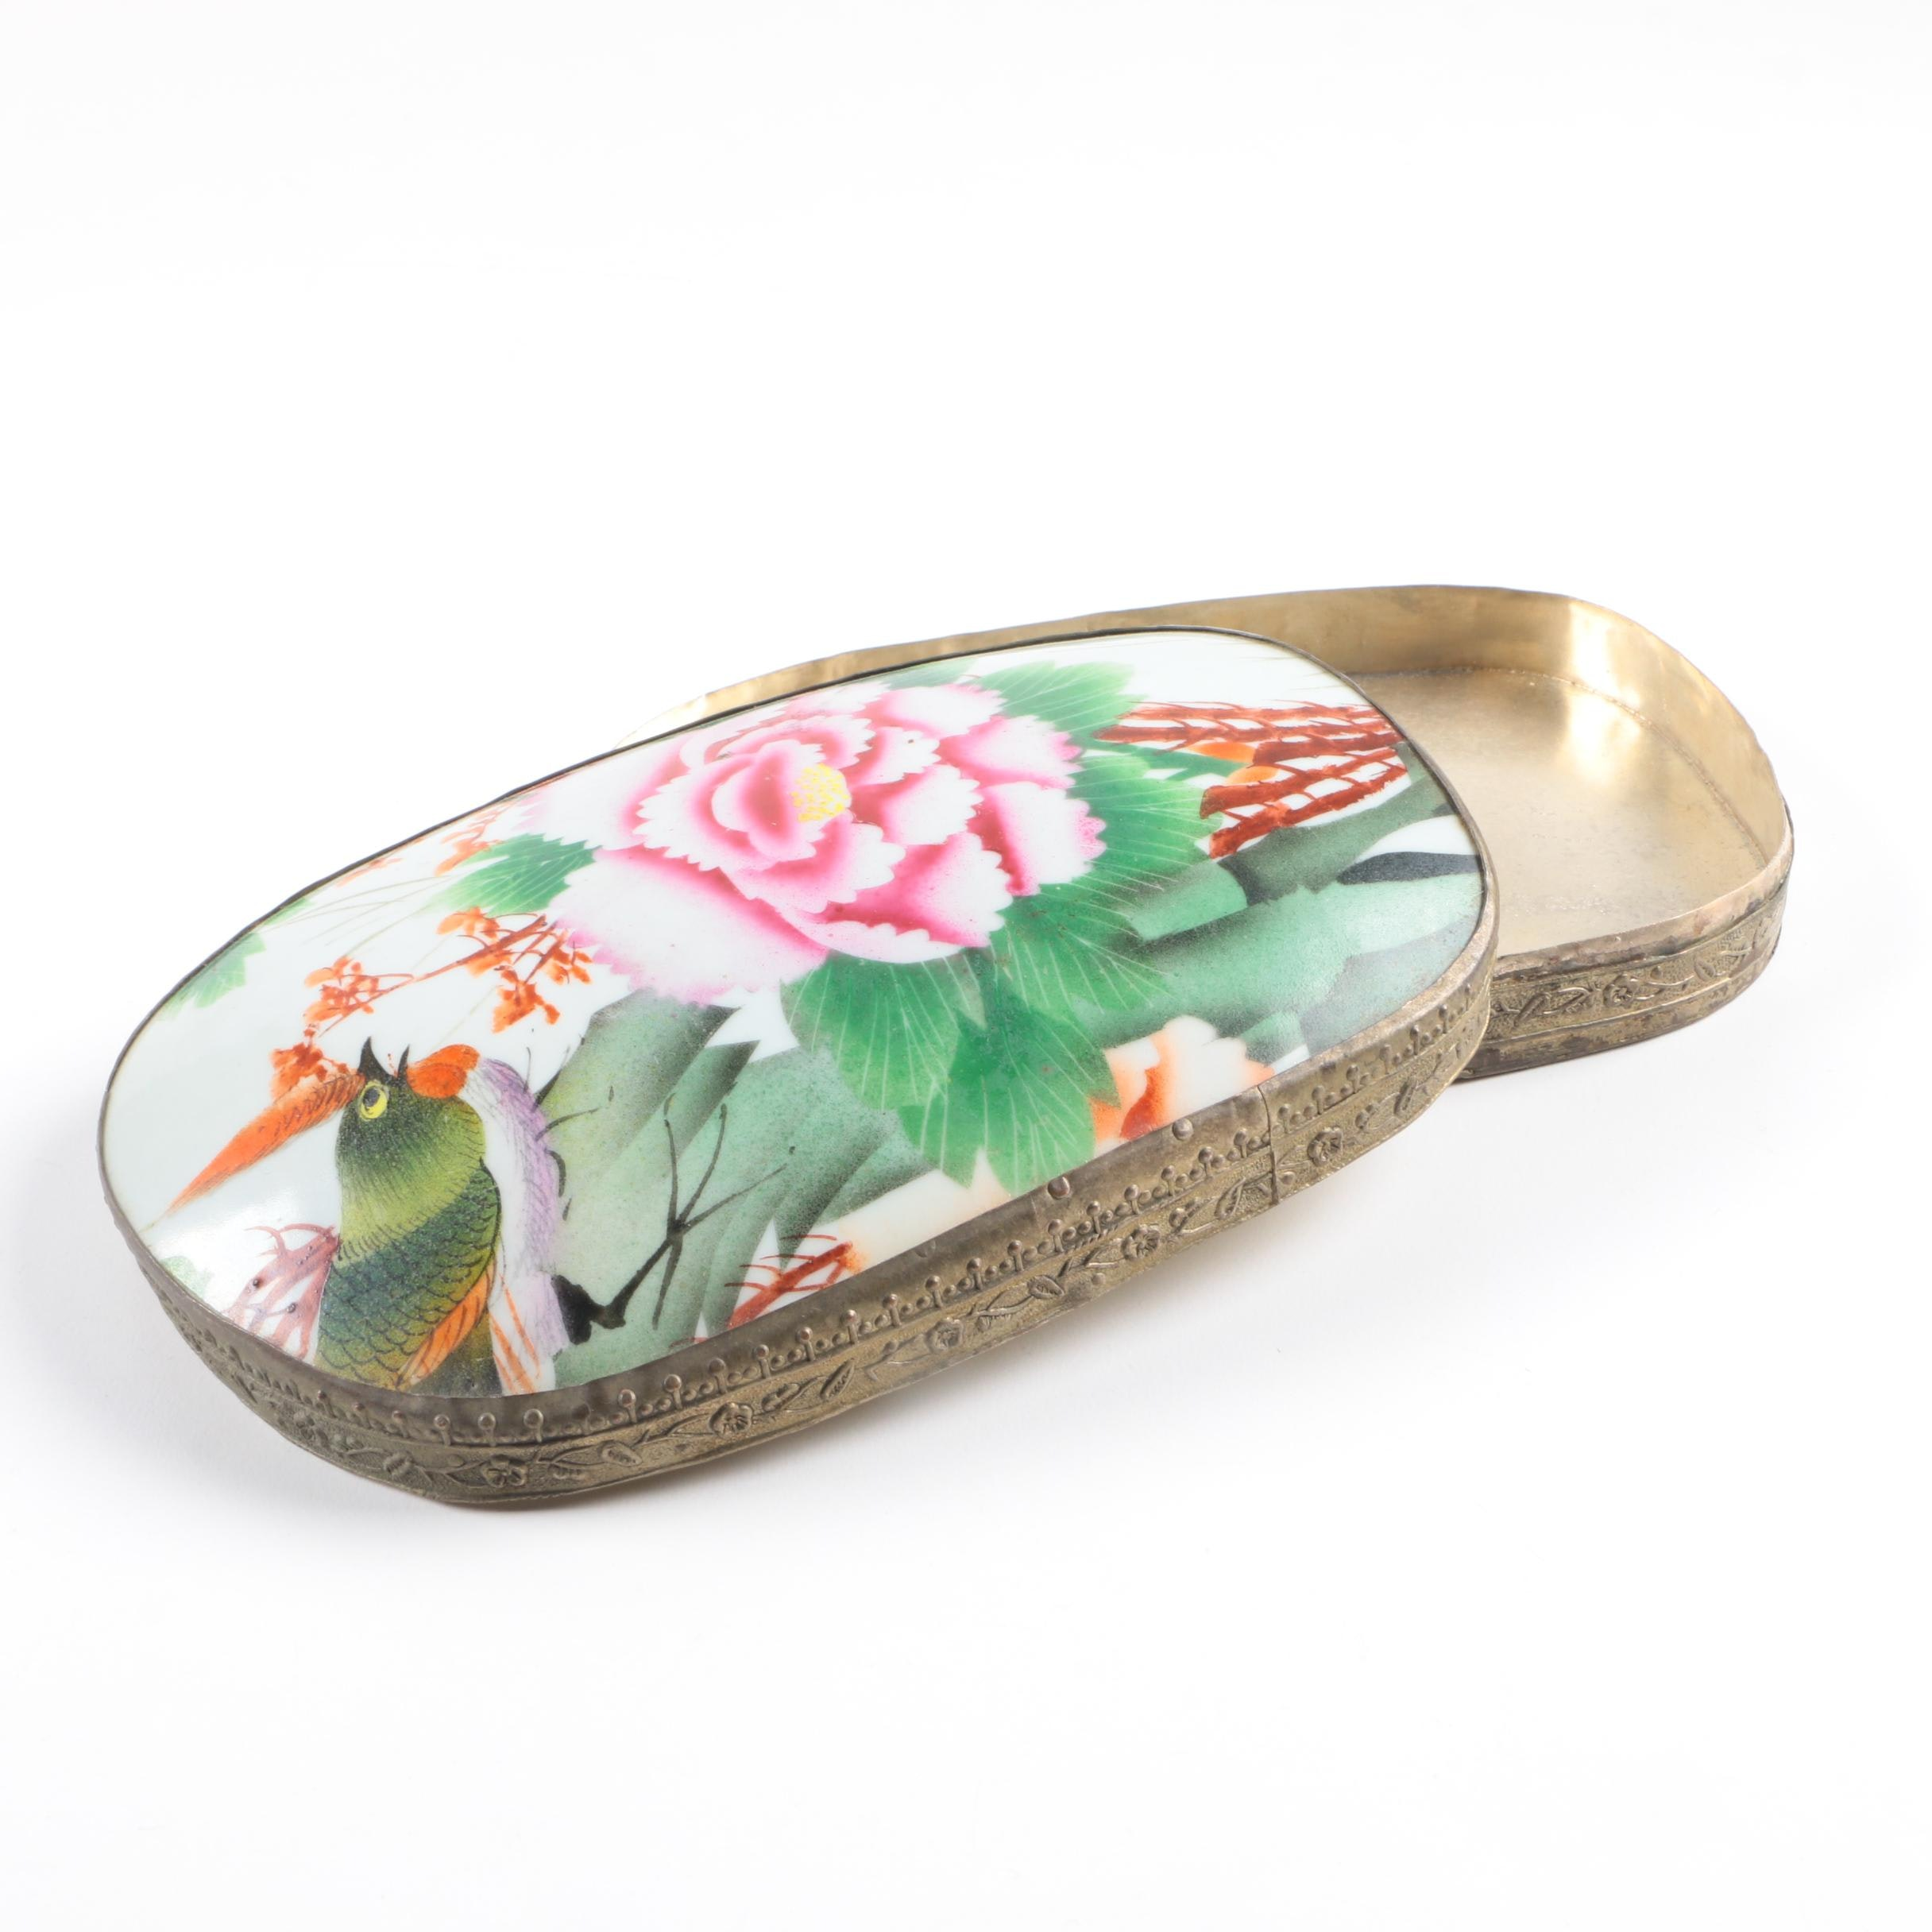 Vintage Hand Painted Asian Porcelain and Metal Box